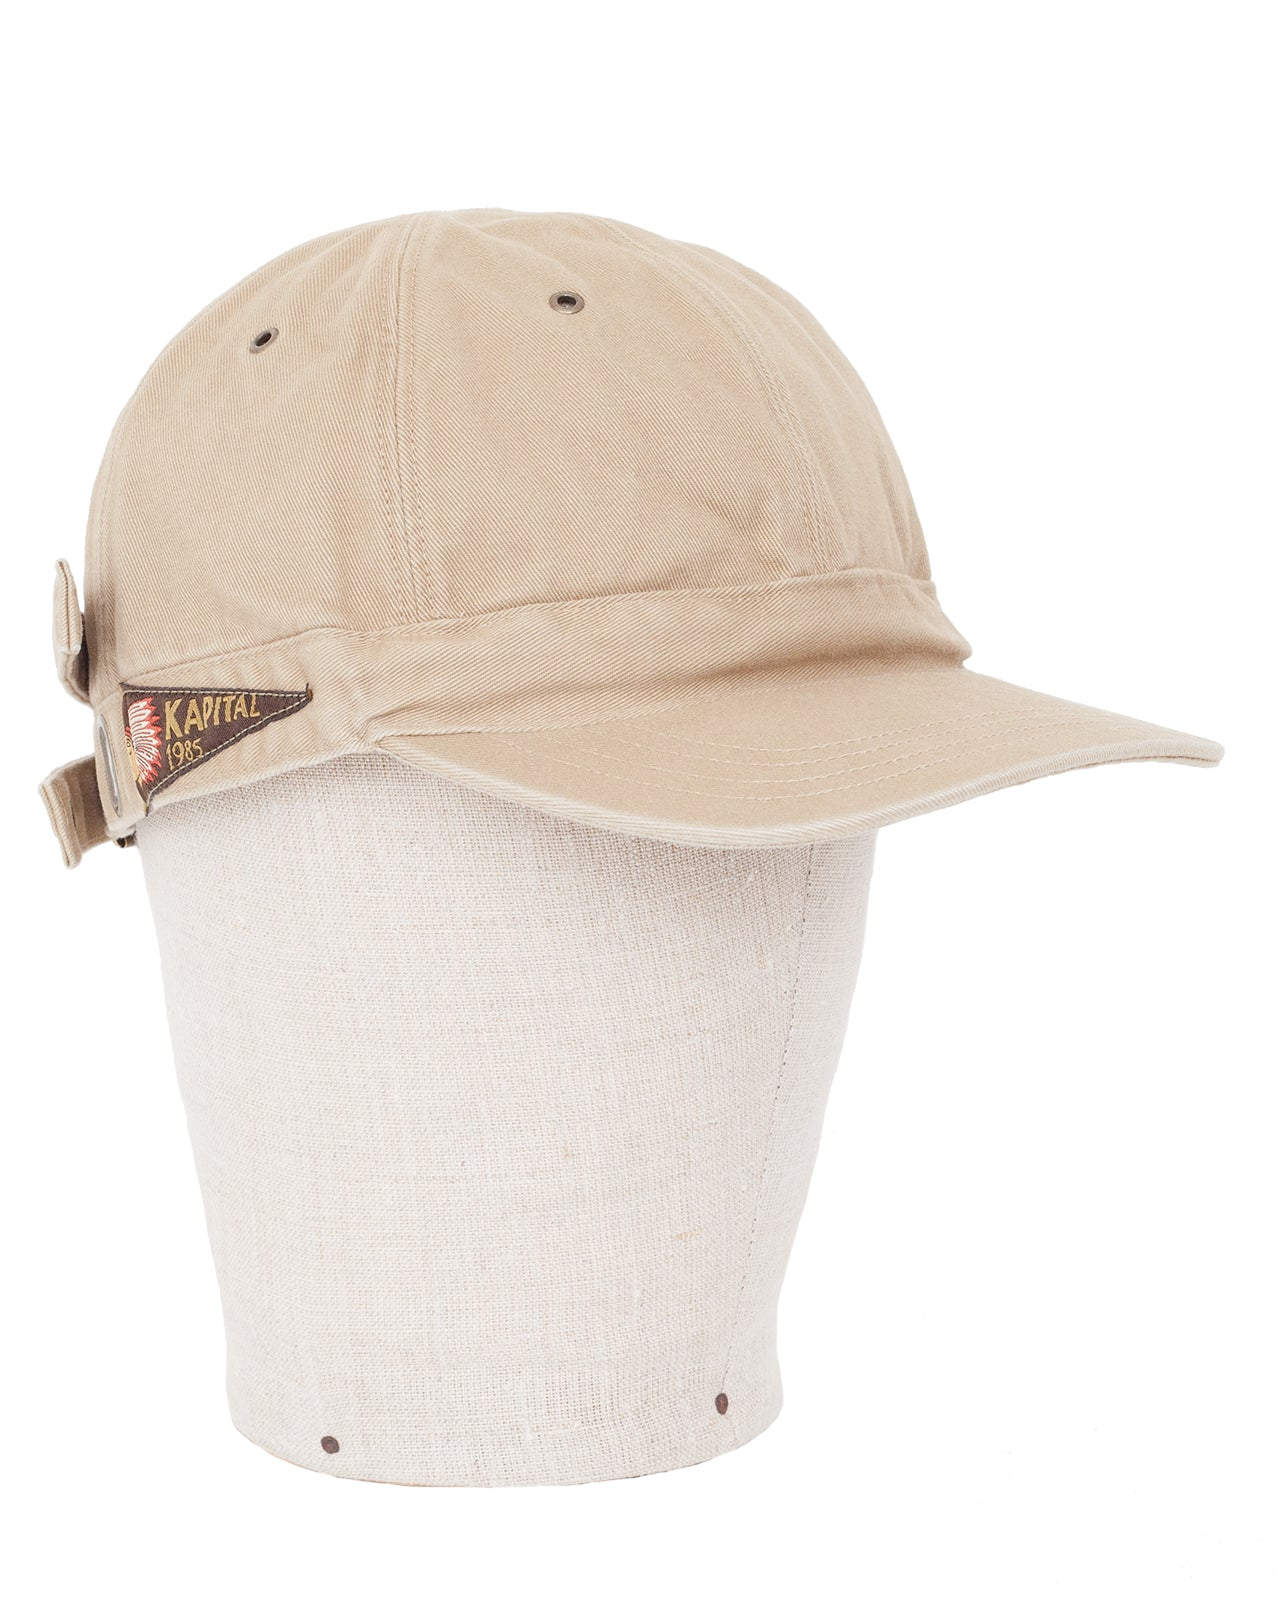 Kapital Chino Barbie Cap (Surf), Beige